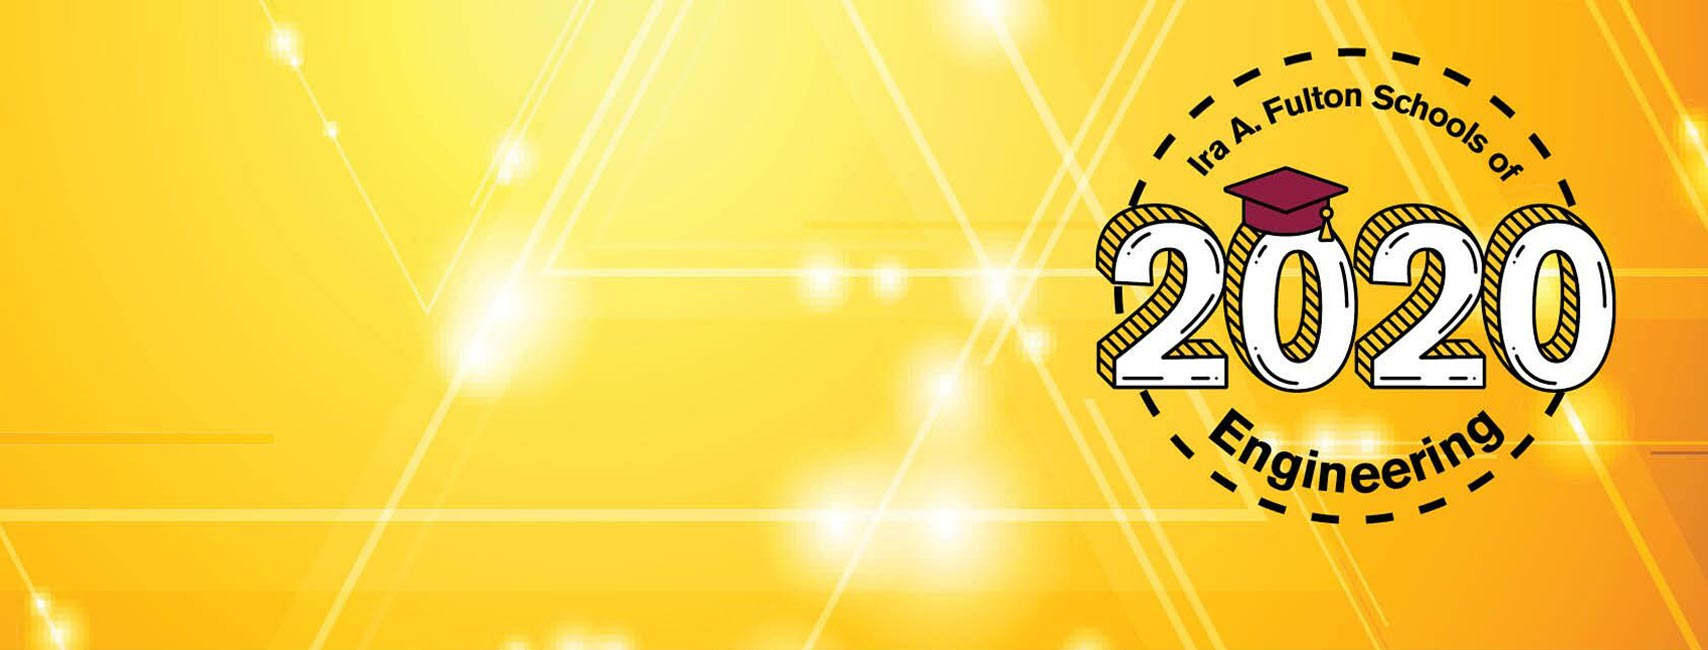 Fulton Schools Grad Stamp on gold sparkle facebook cover image